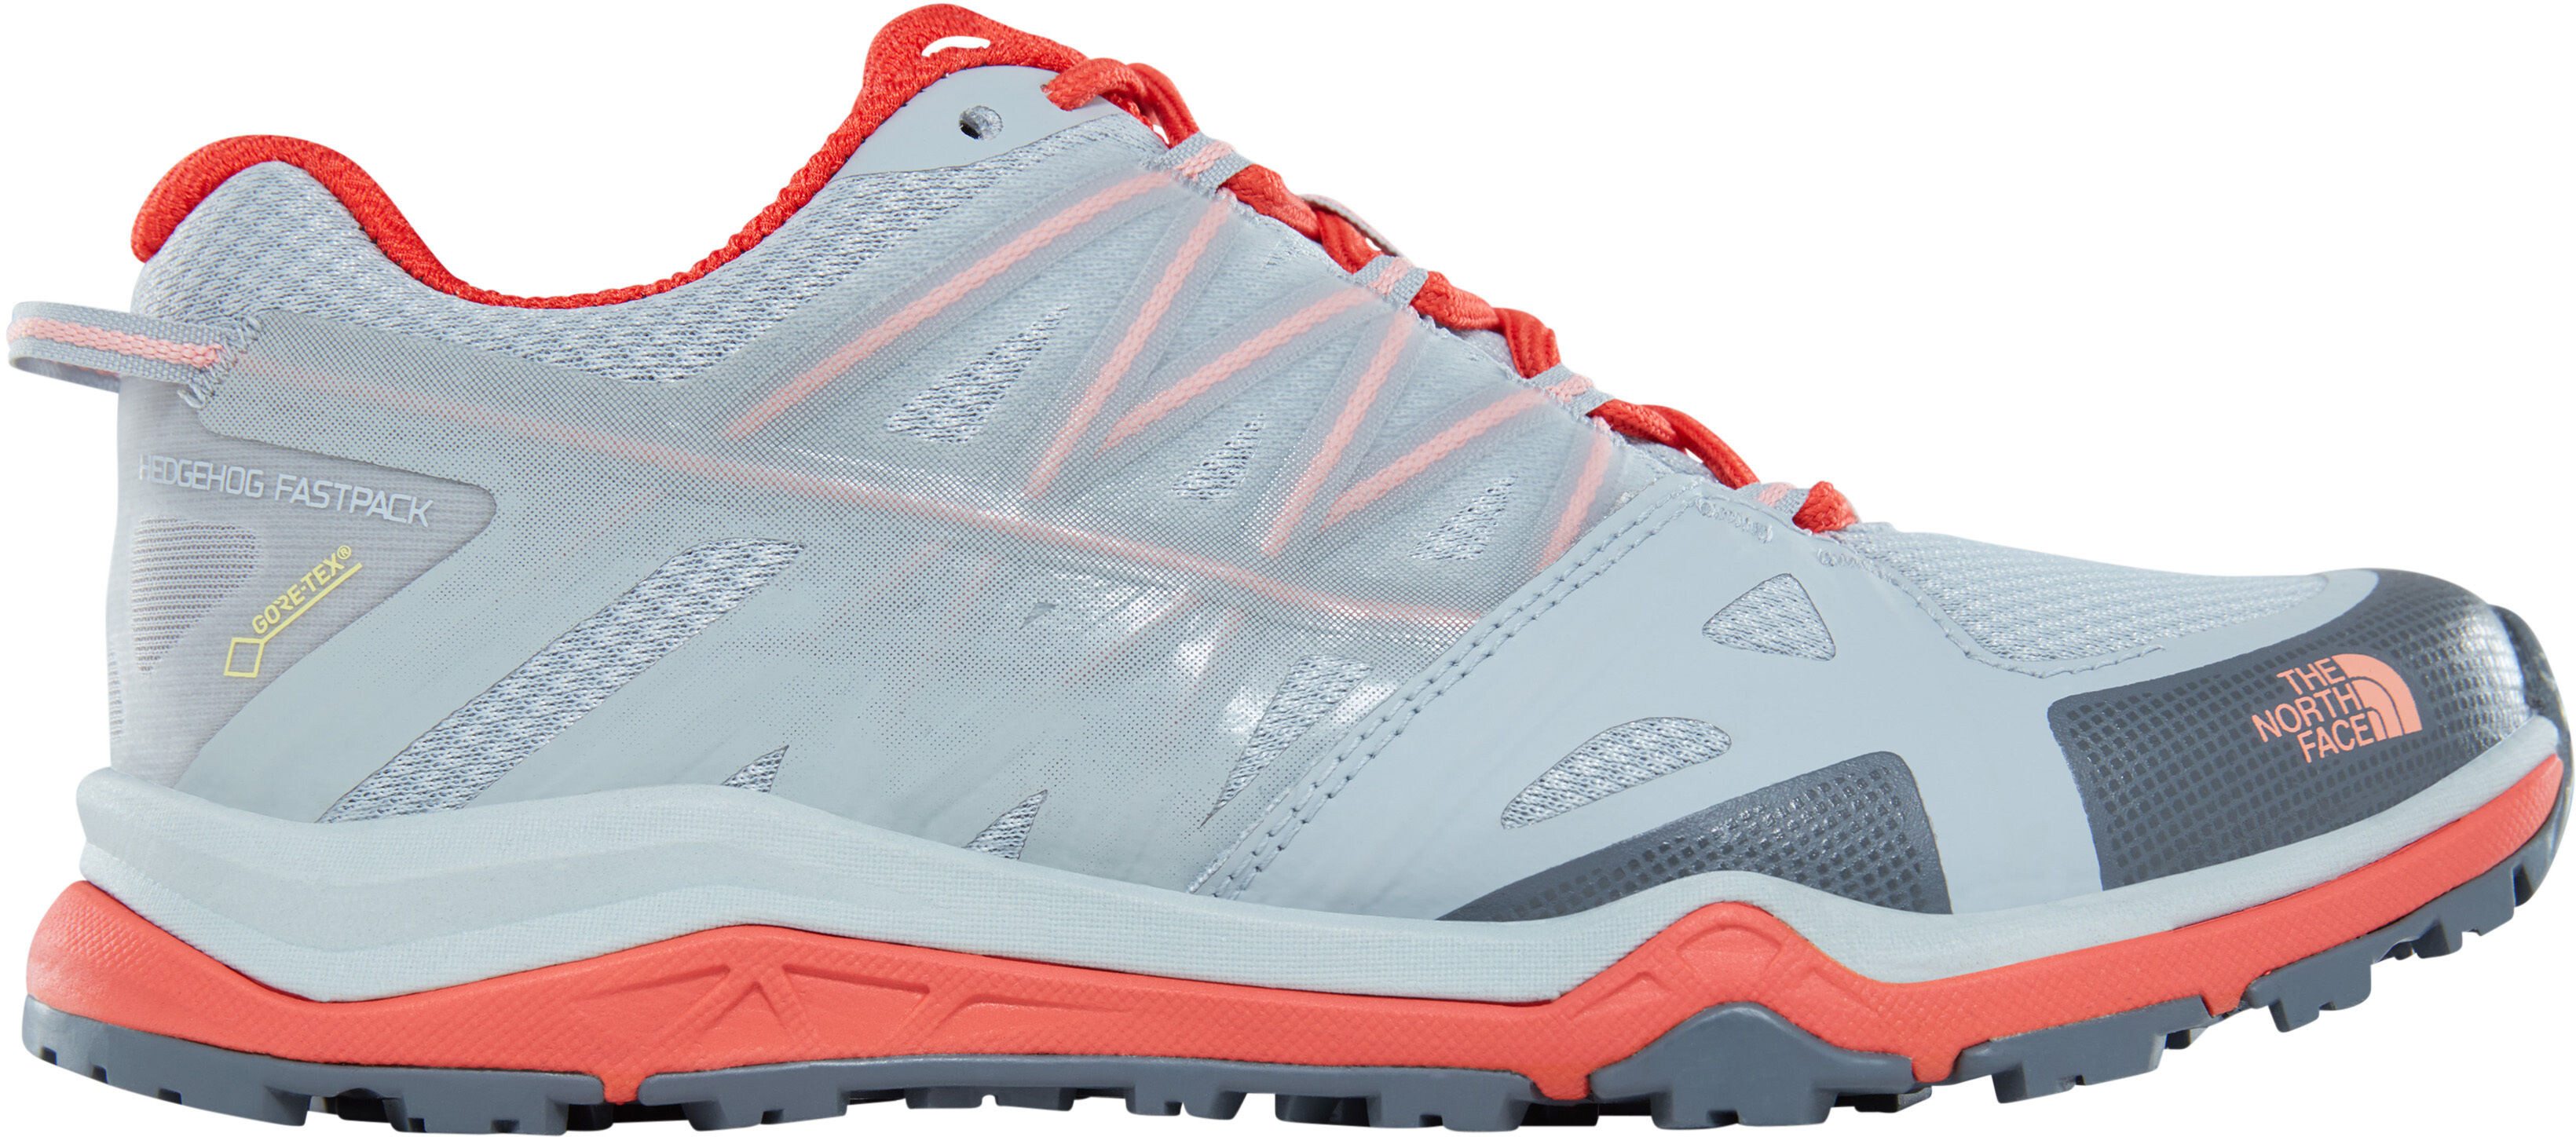 178e0e63d The North Face Hedgehog Fastpack Lite II GTX Shoes Women high rise  grey/fire brick red